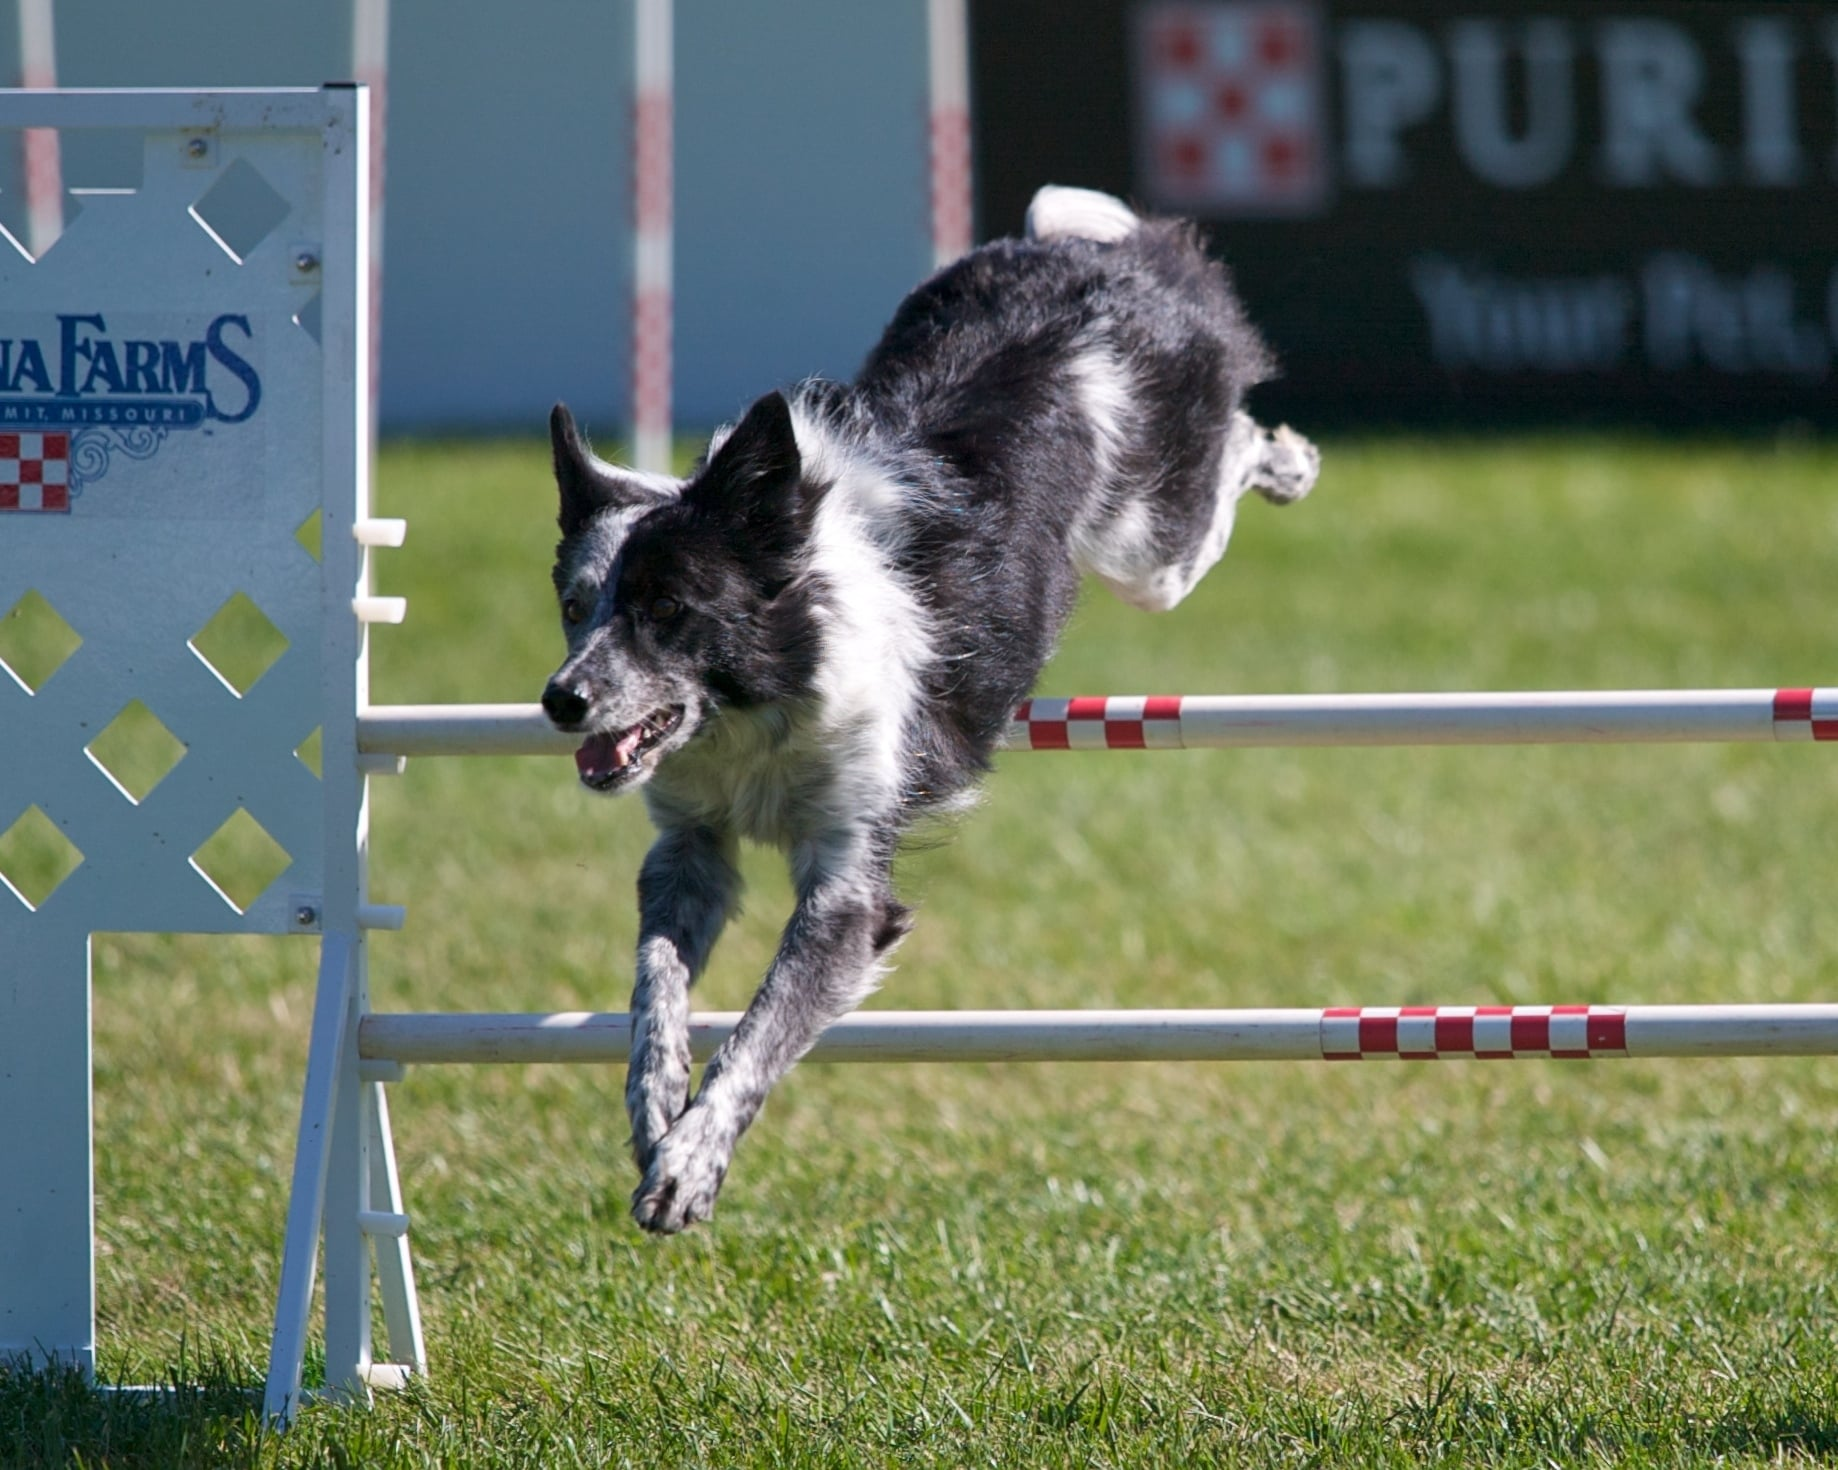 Dog Agility Training Obstacles